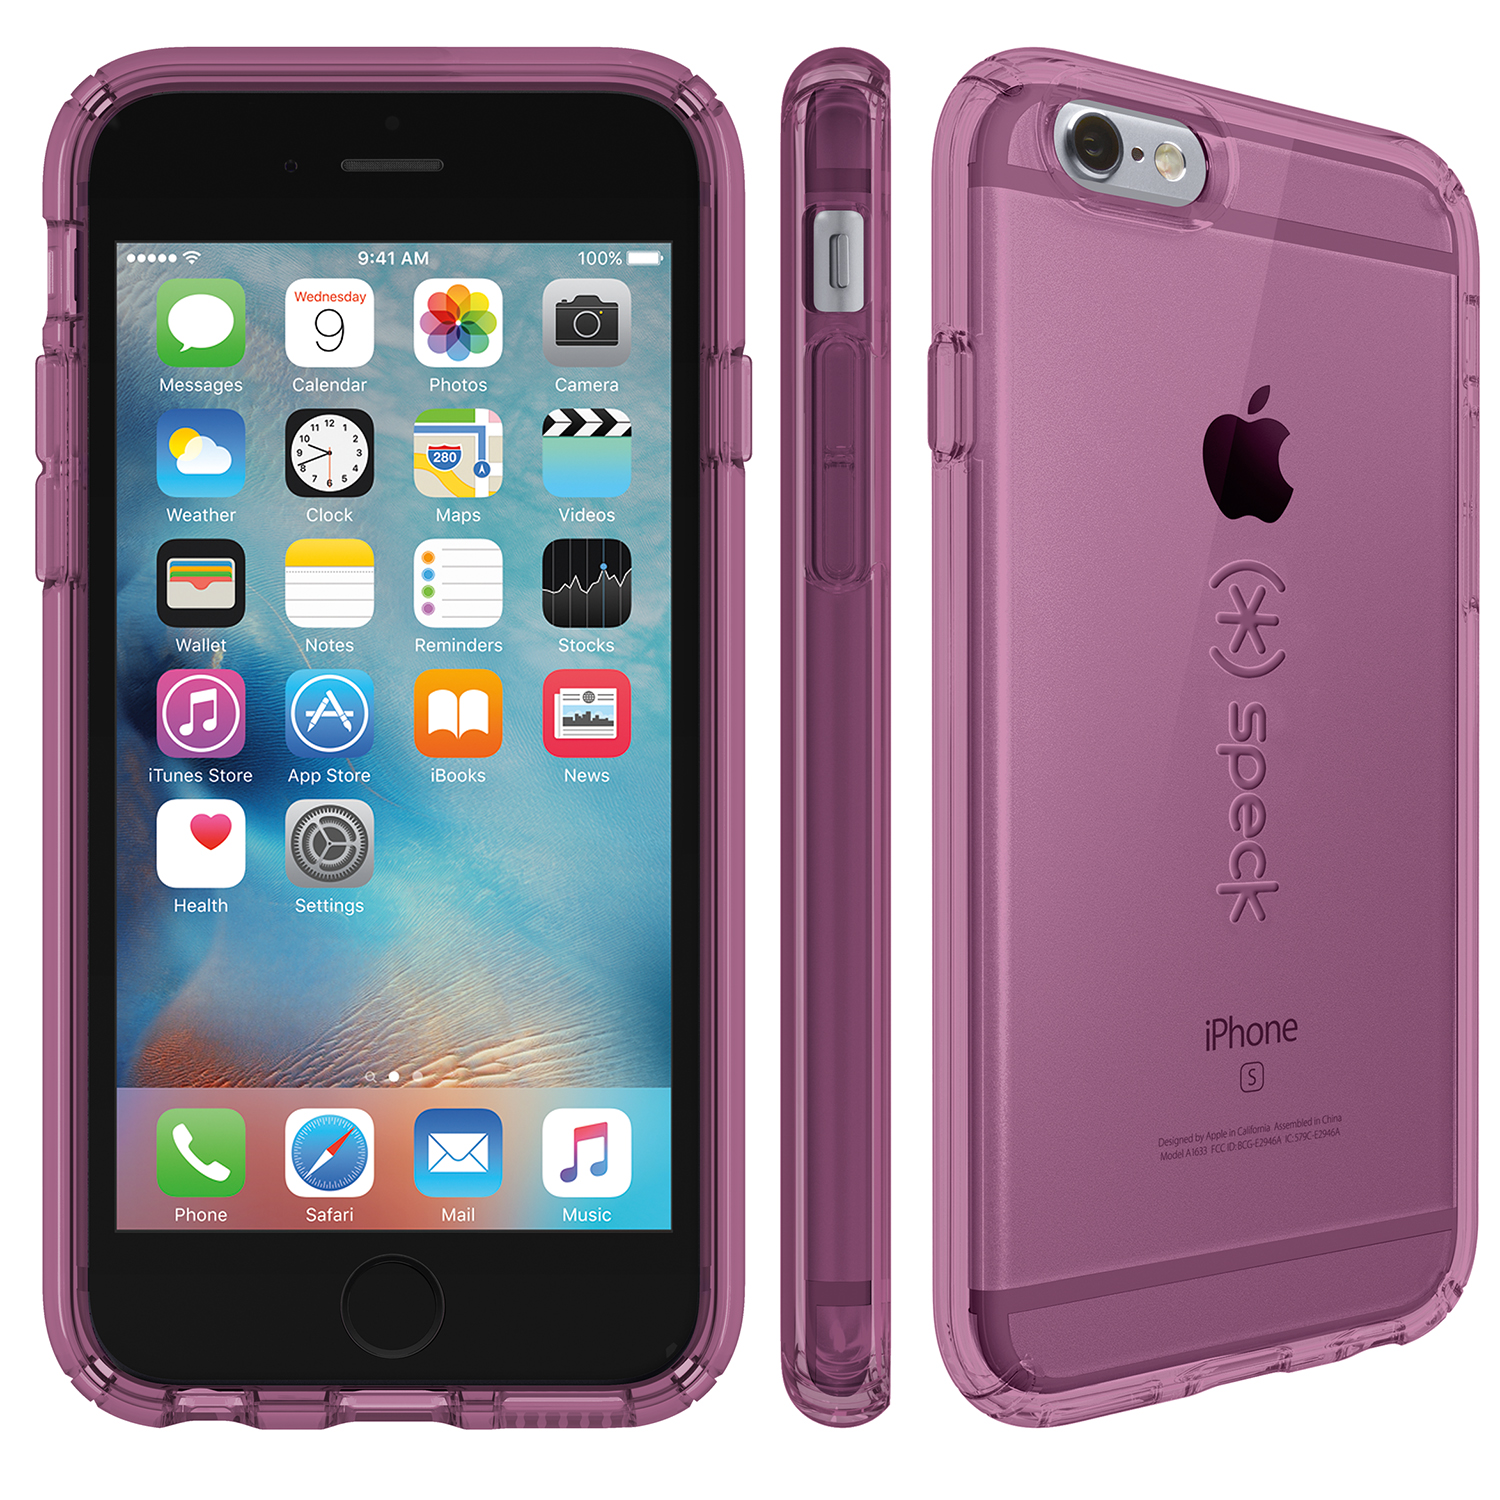 Compare prices for Speck CandyShell Clear iPhone 6s Plus and iPhone 6 Plus Cases Beaming Orchid Purple